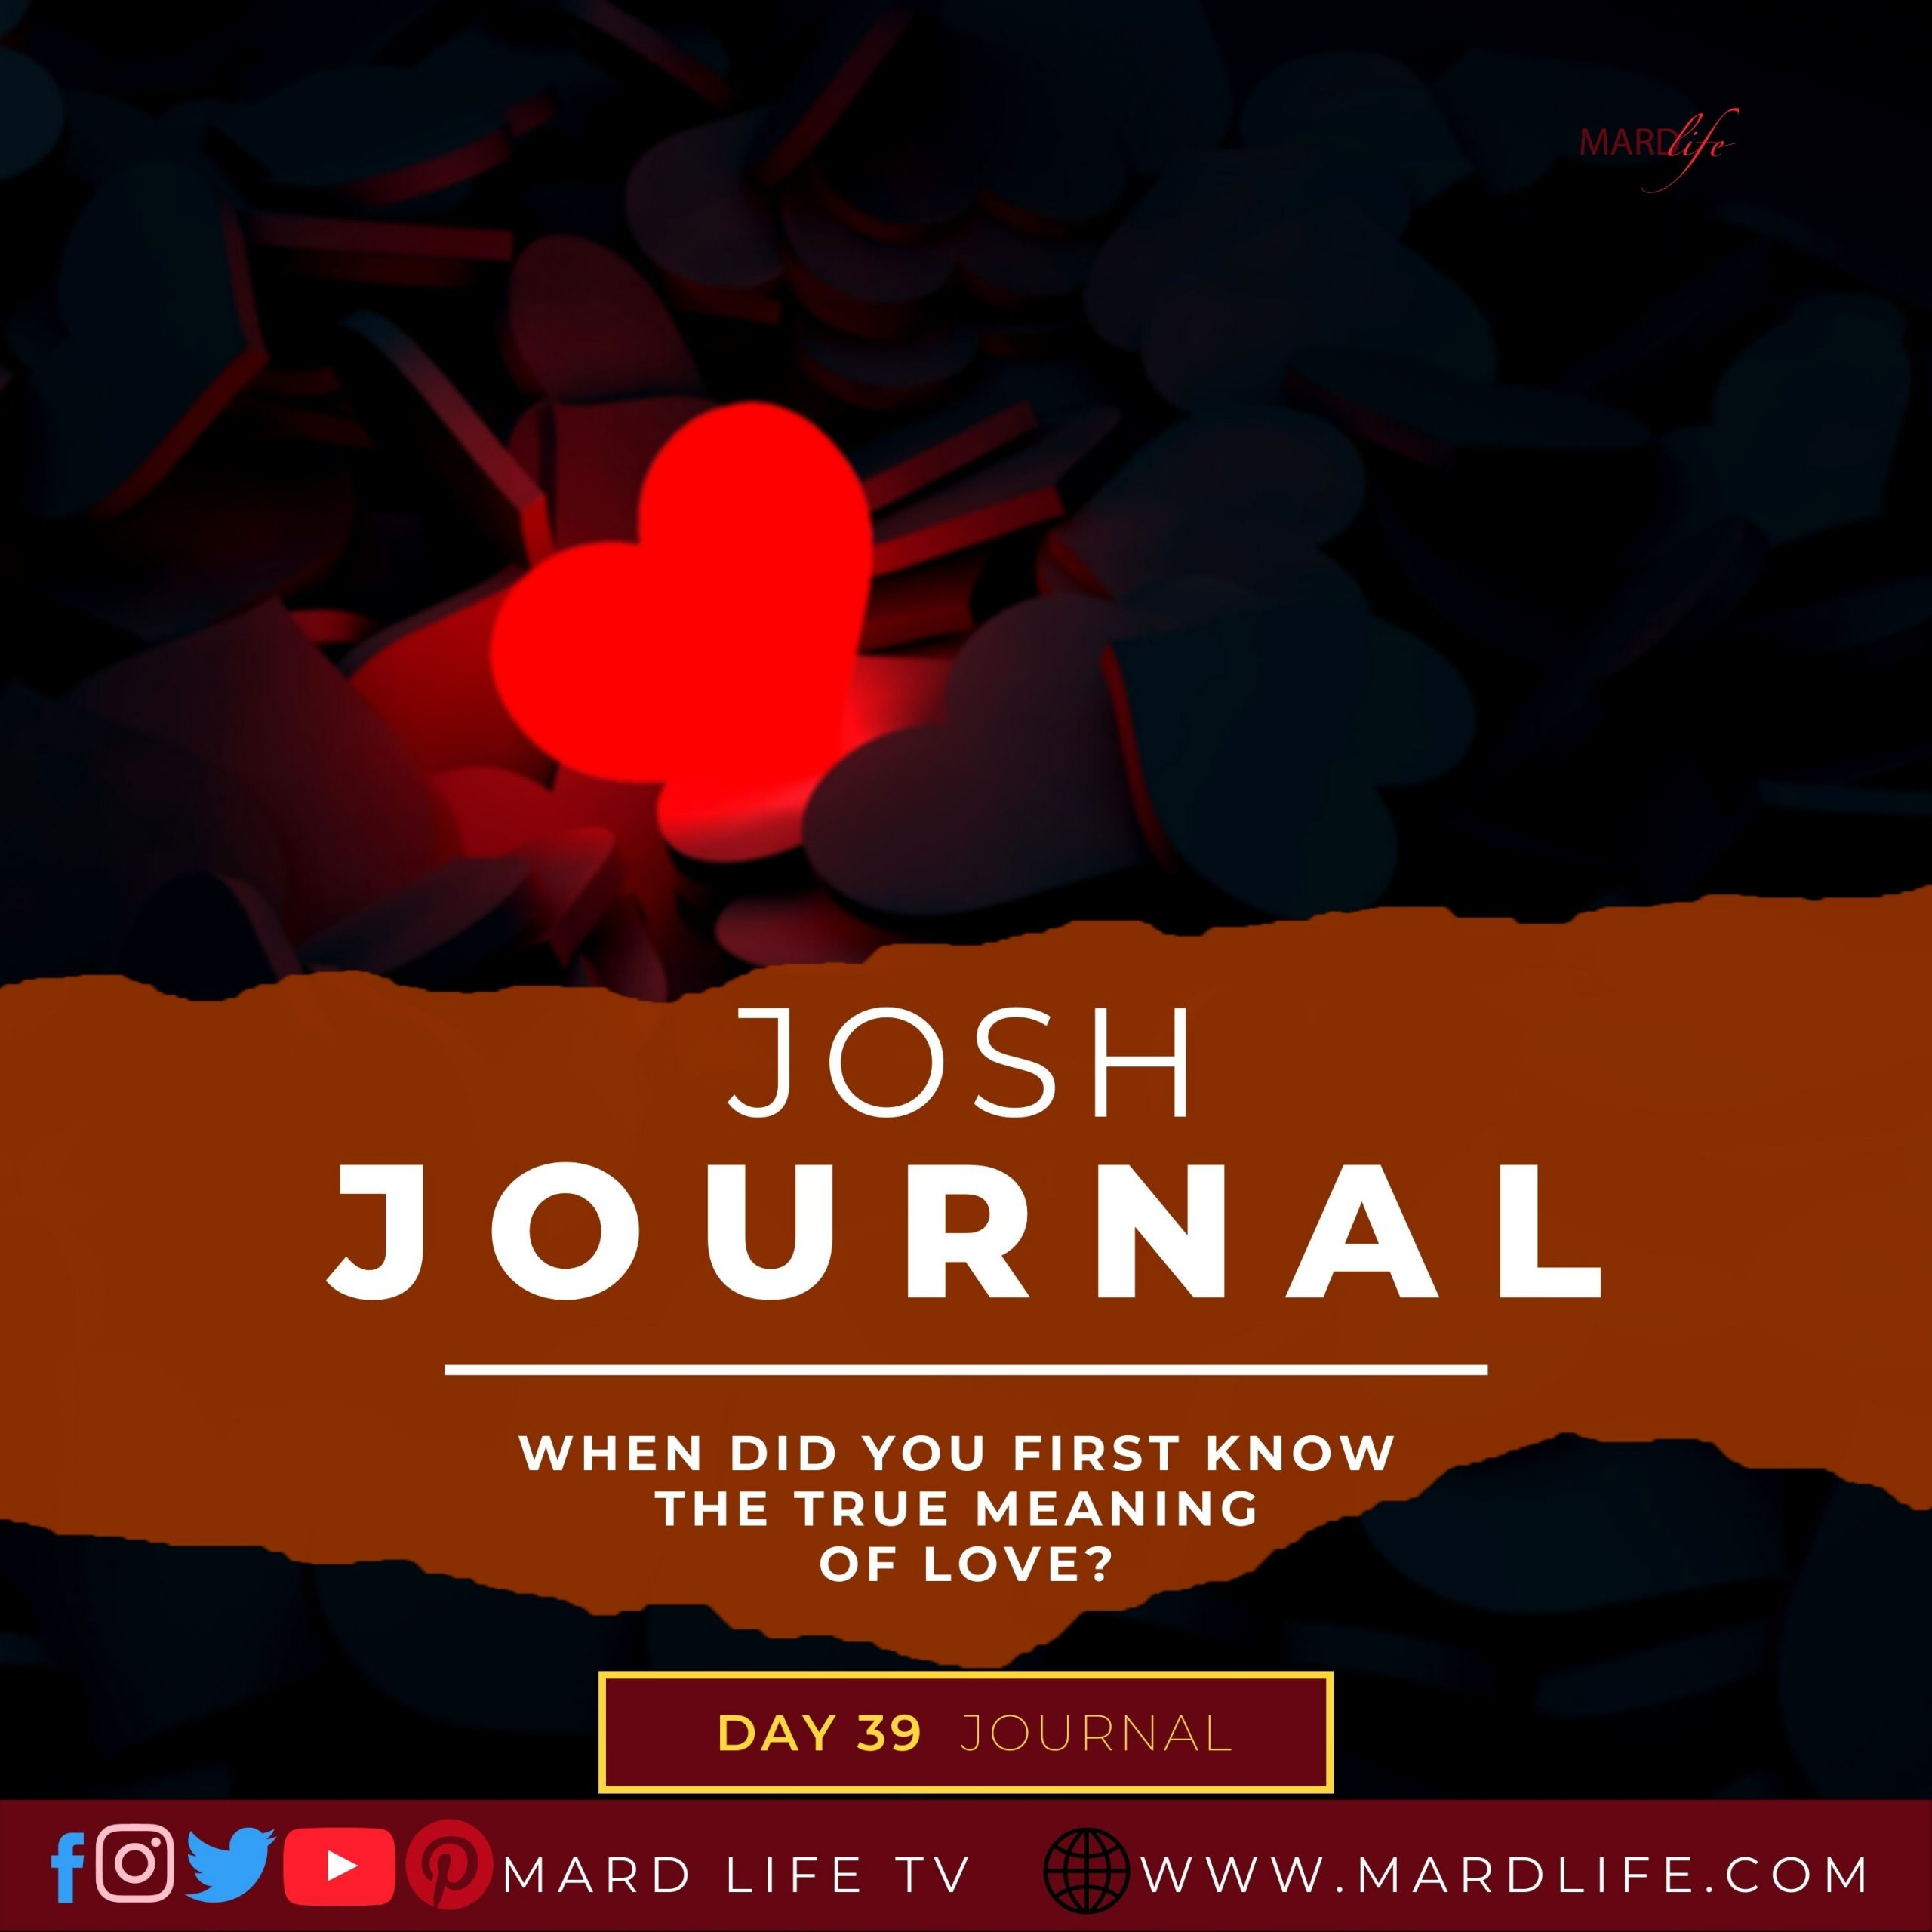 When Did You First Know The True Meaning Of Love? – Josh Journal